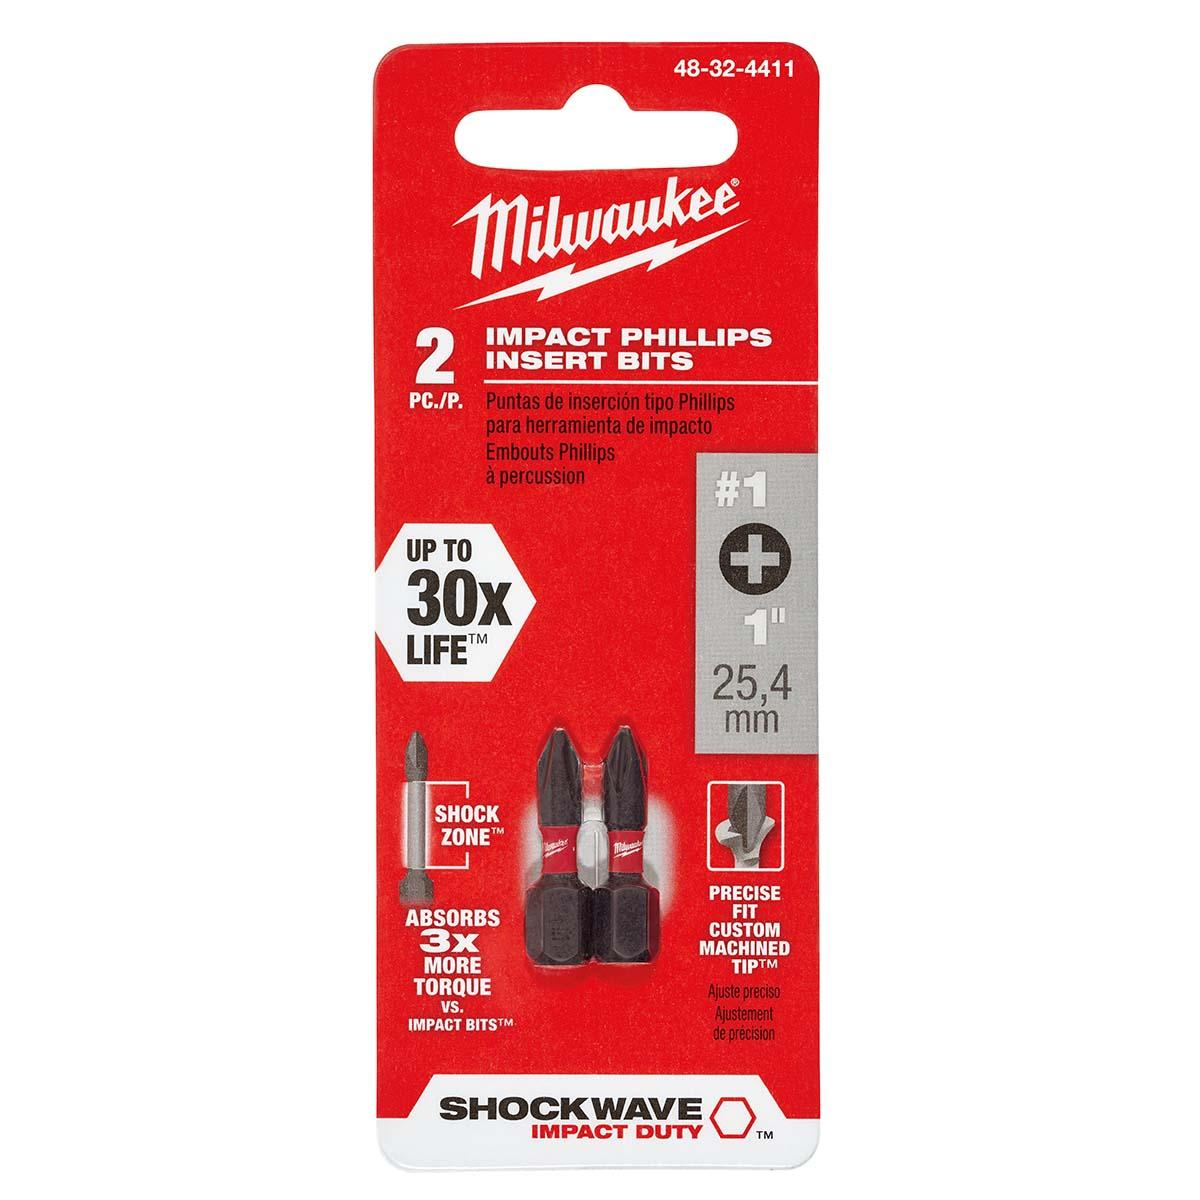 "SHOCKWAVEâ""¢ Impact Phillips #1 Insert Bits (2PK)"